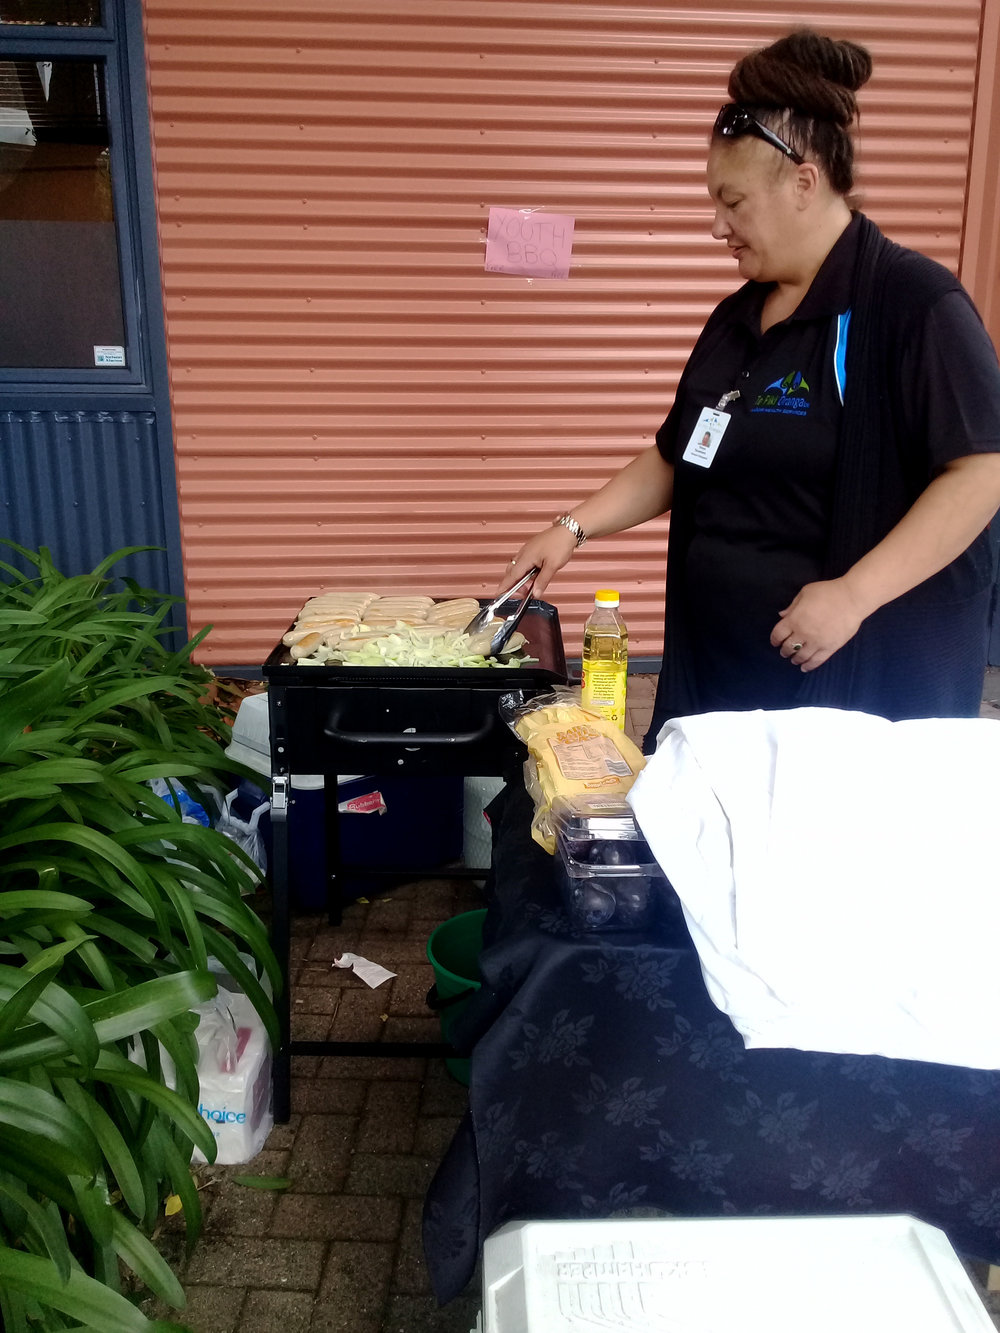 Tanya Tauwhare of Te Piki Oranga loves feeding the kids who hang out at the library with some healthy kai.